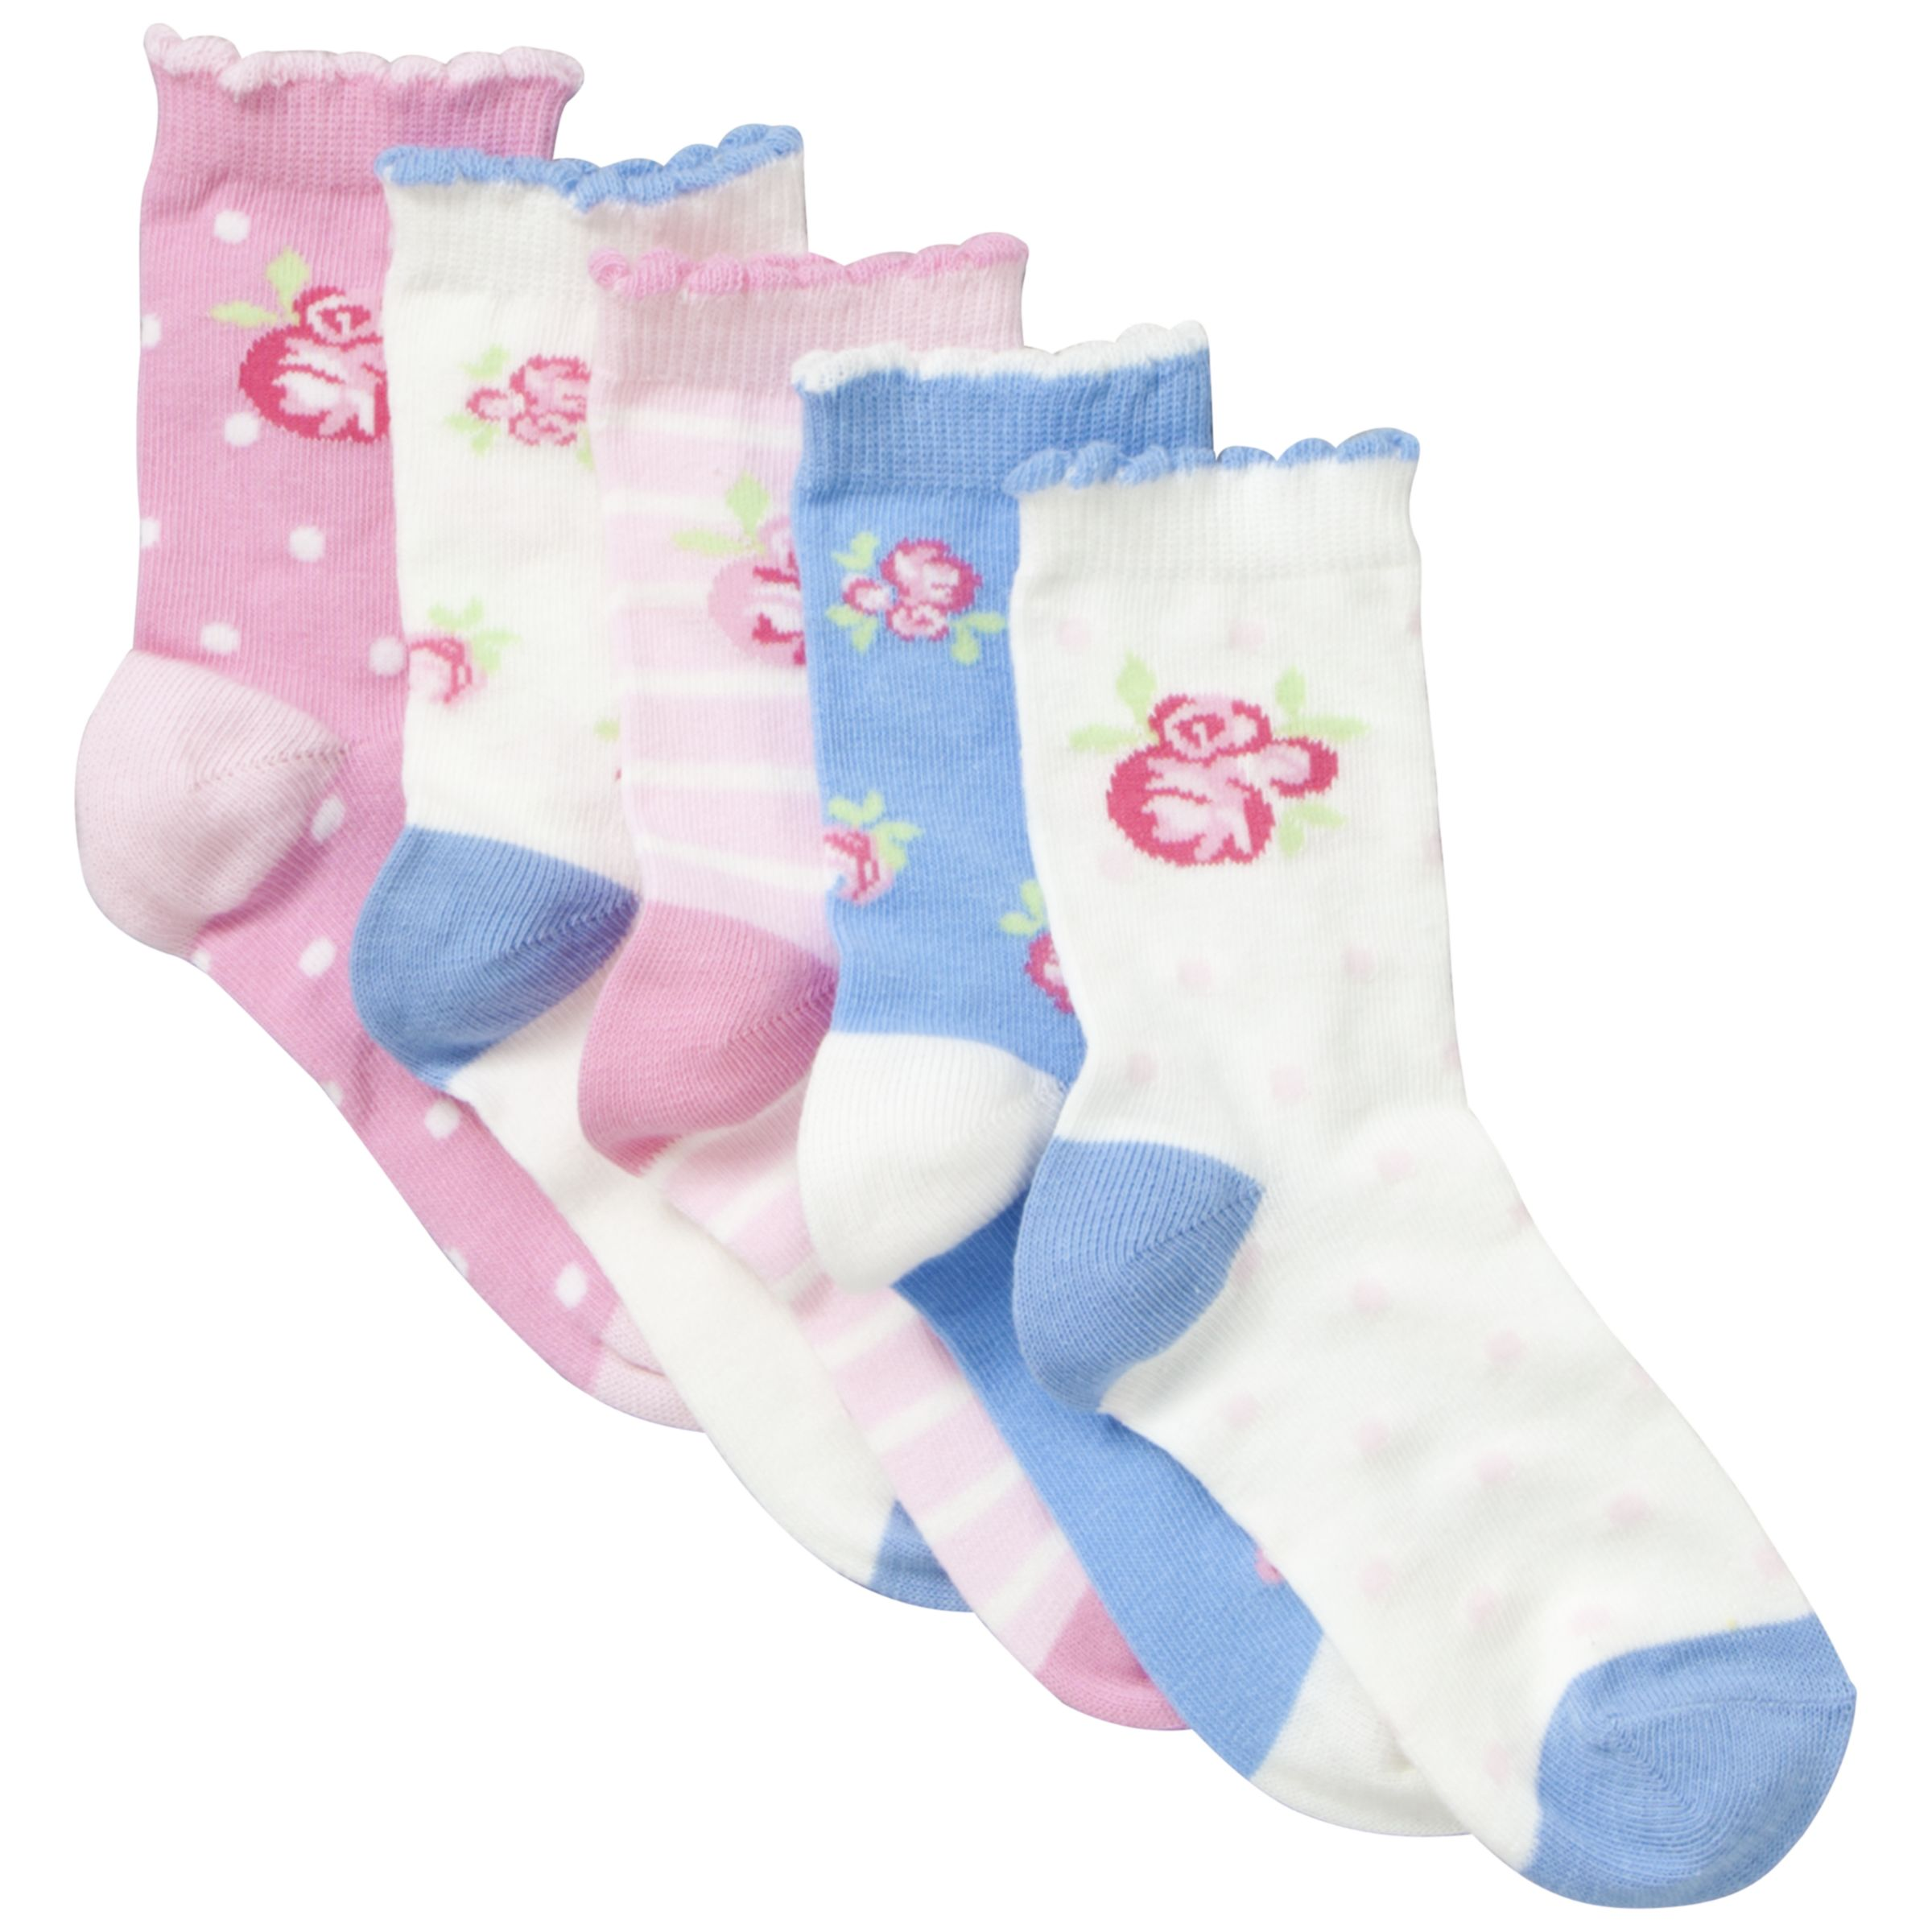 John Lewis Girl Vintage Rose Socks, Pack of 5, Pink/Blue